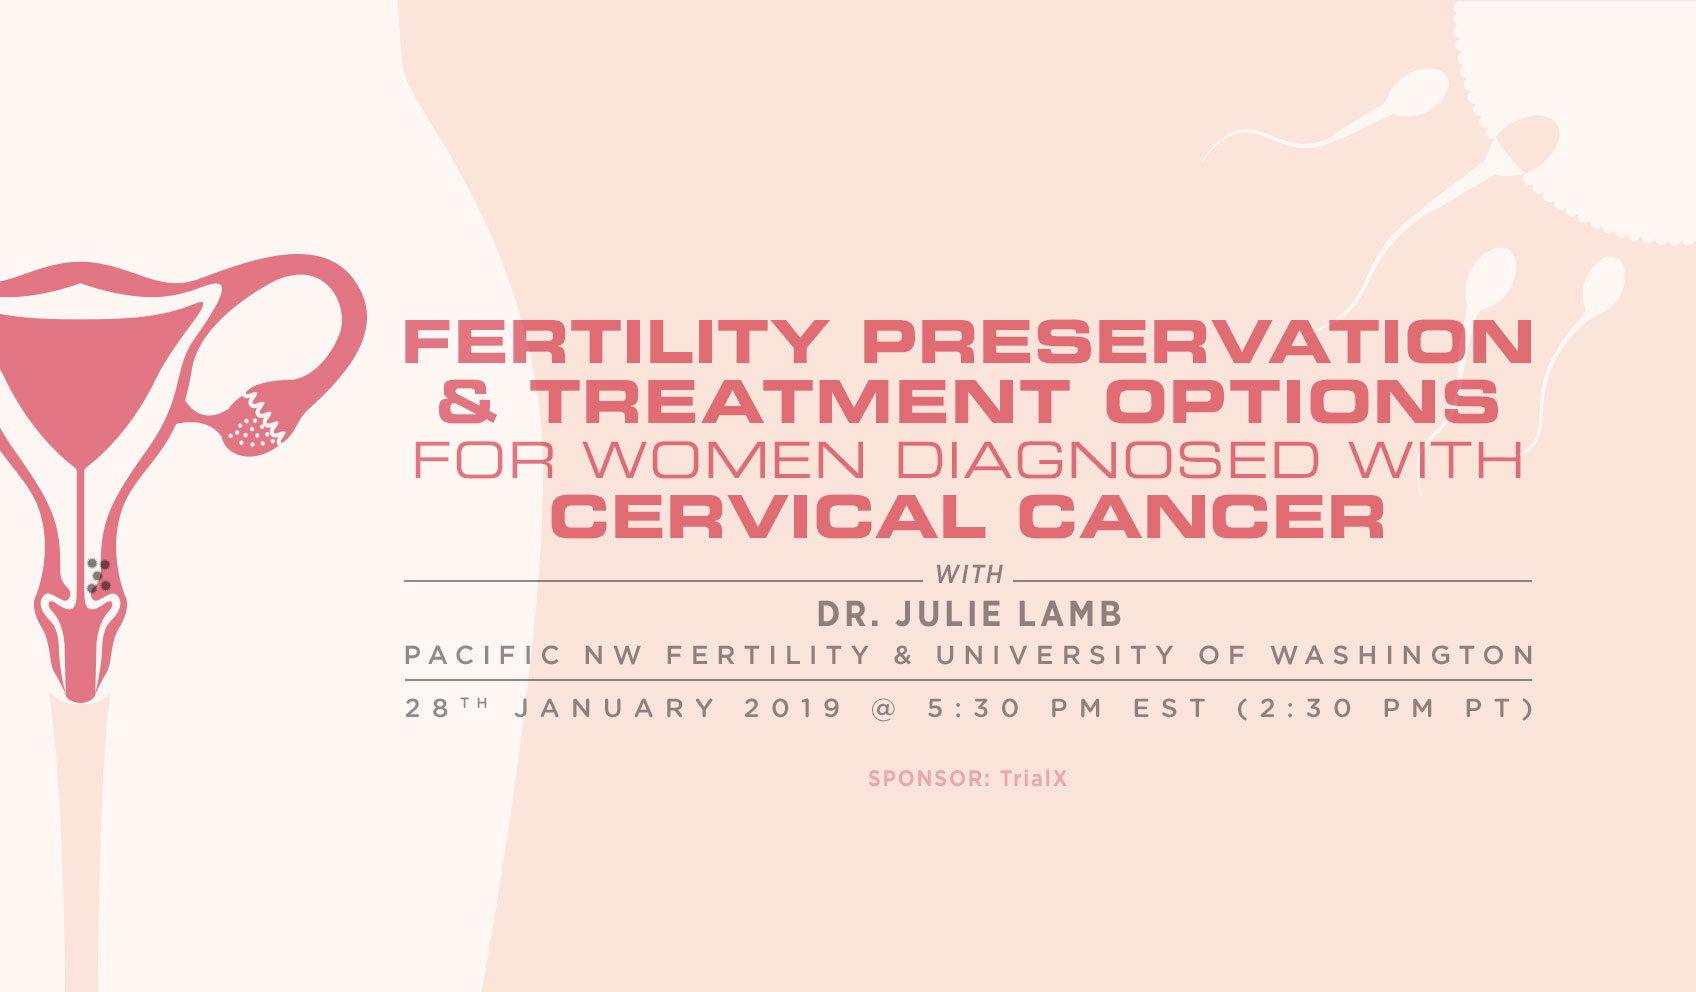 Fertility Preservation and Treatment Options for Women Diagnosed with Cervical Cancer